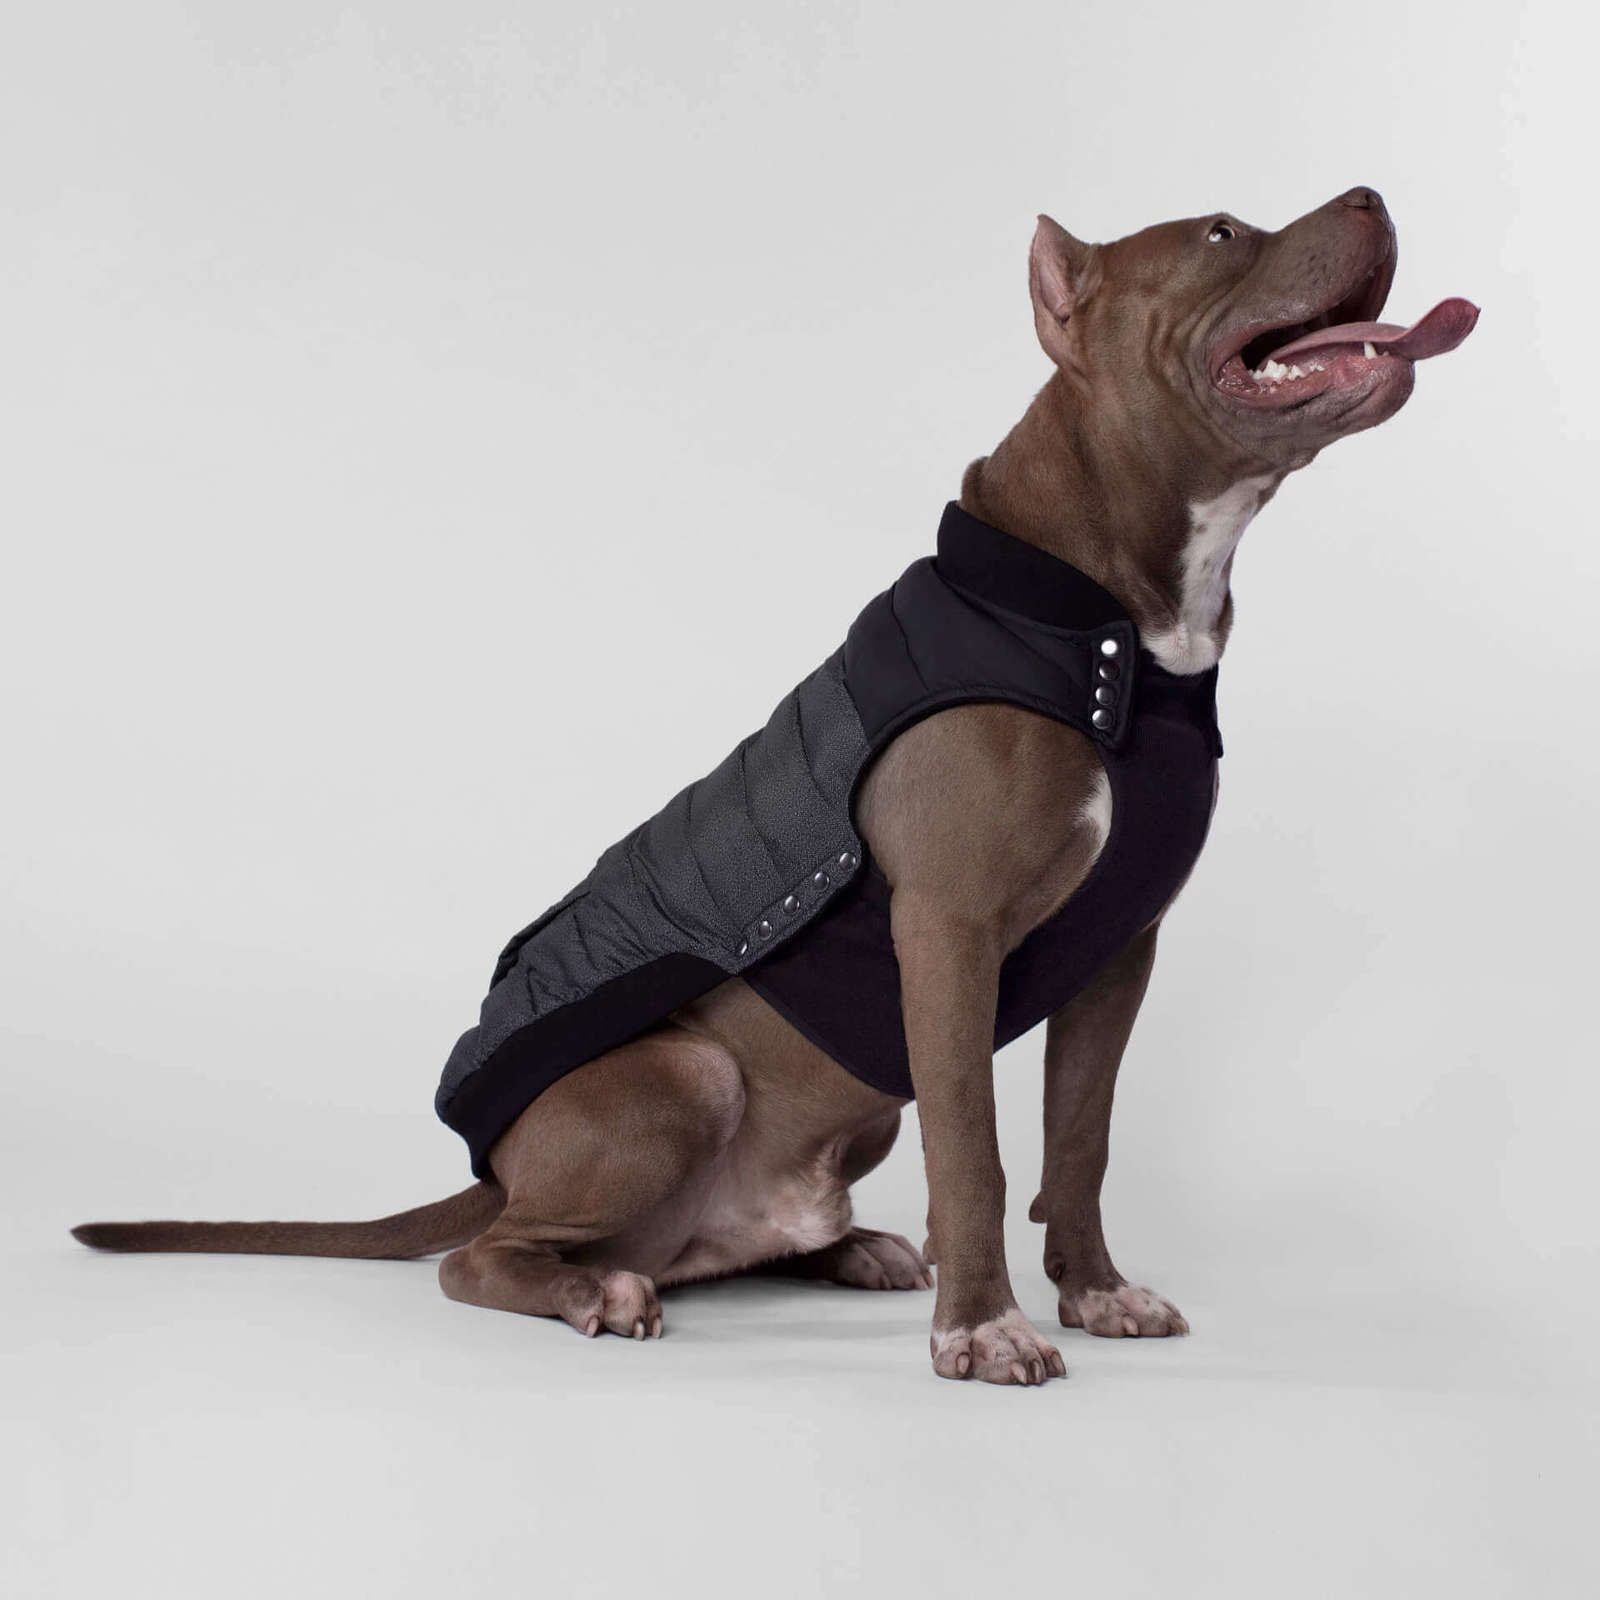 Summit Stretch Vest Outerwear Canada Pooch Dog Clothes Dogs Pooch [ 1600 x 1600 Pixel ]